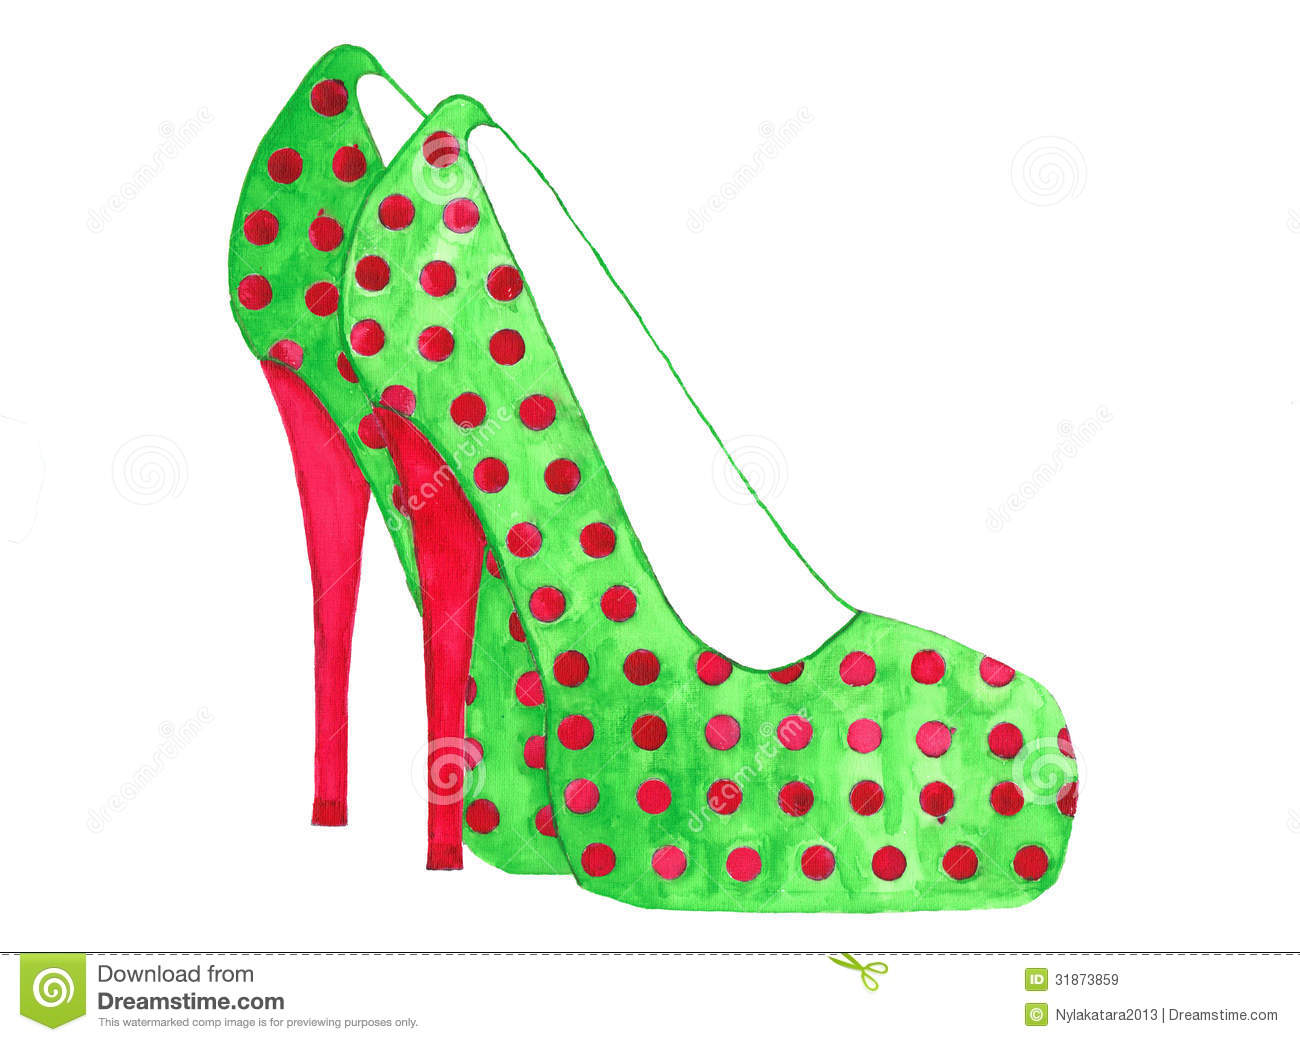 Stiletto High Heels Polka Dot Watercolor Royalty Free Stock Images.